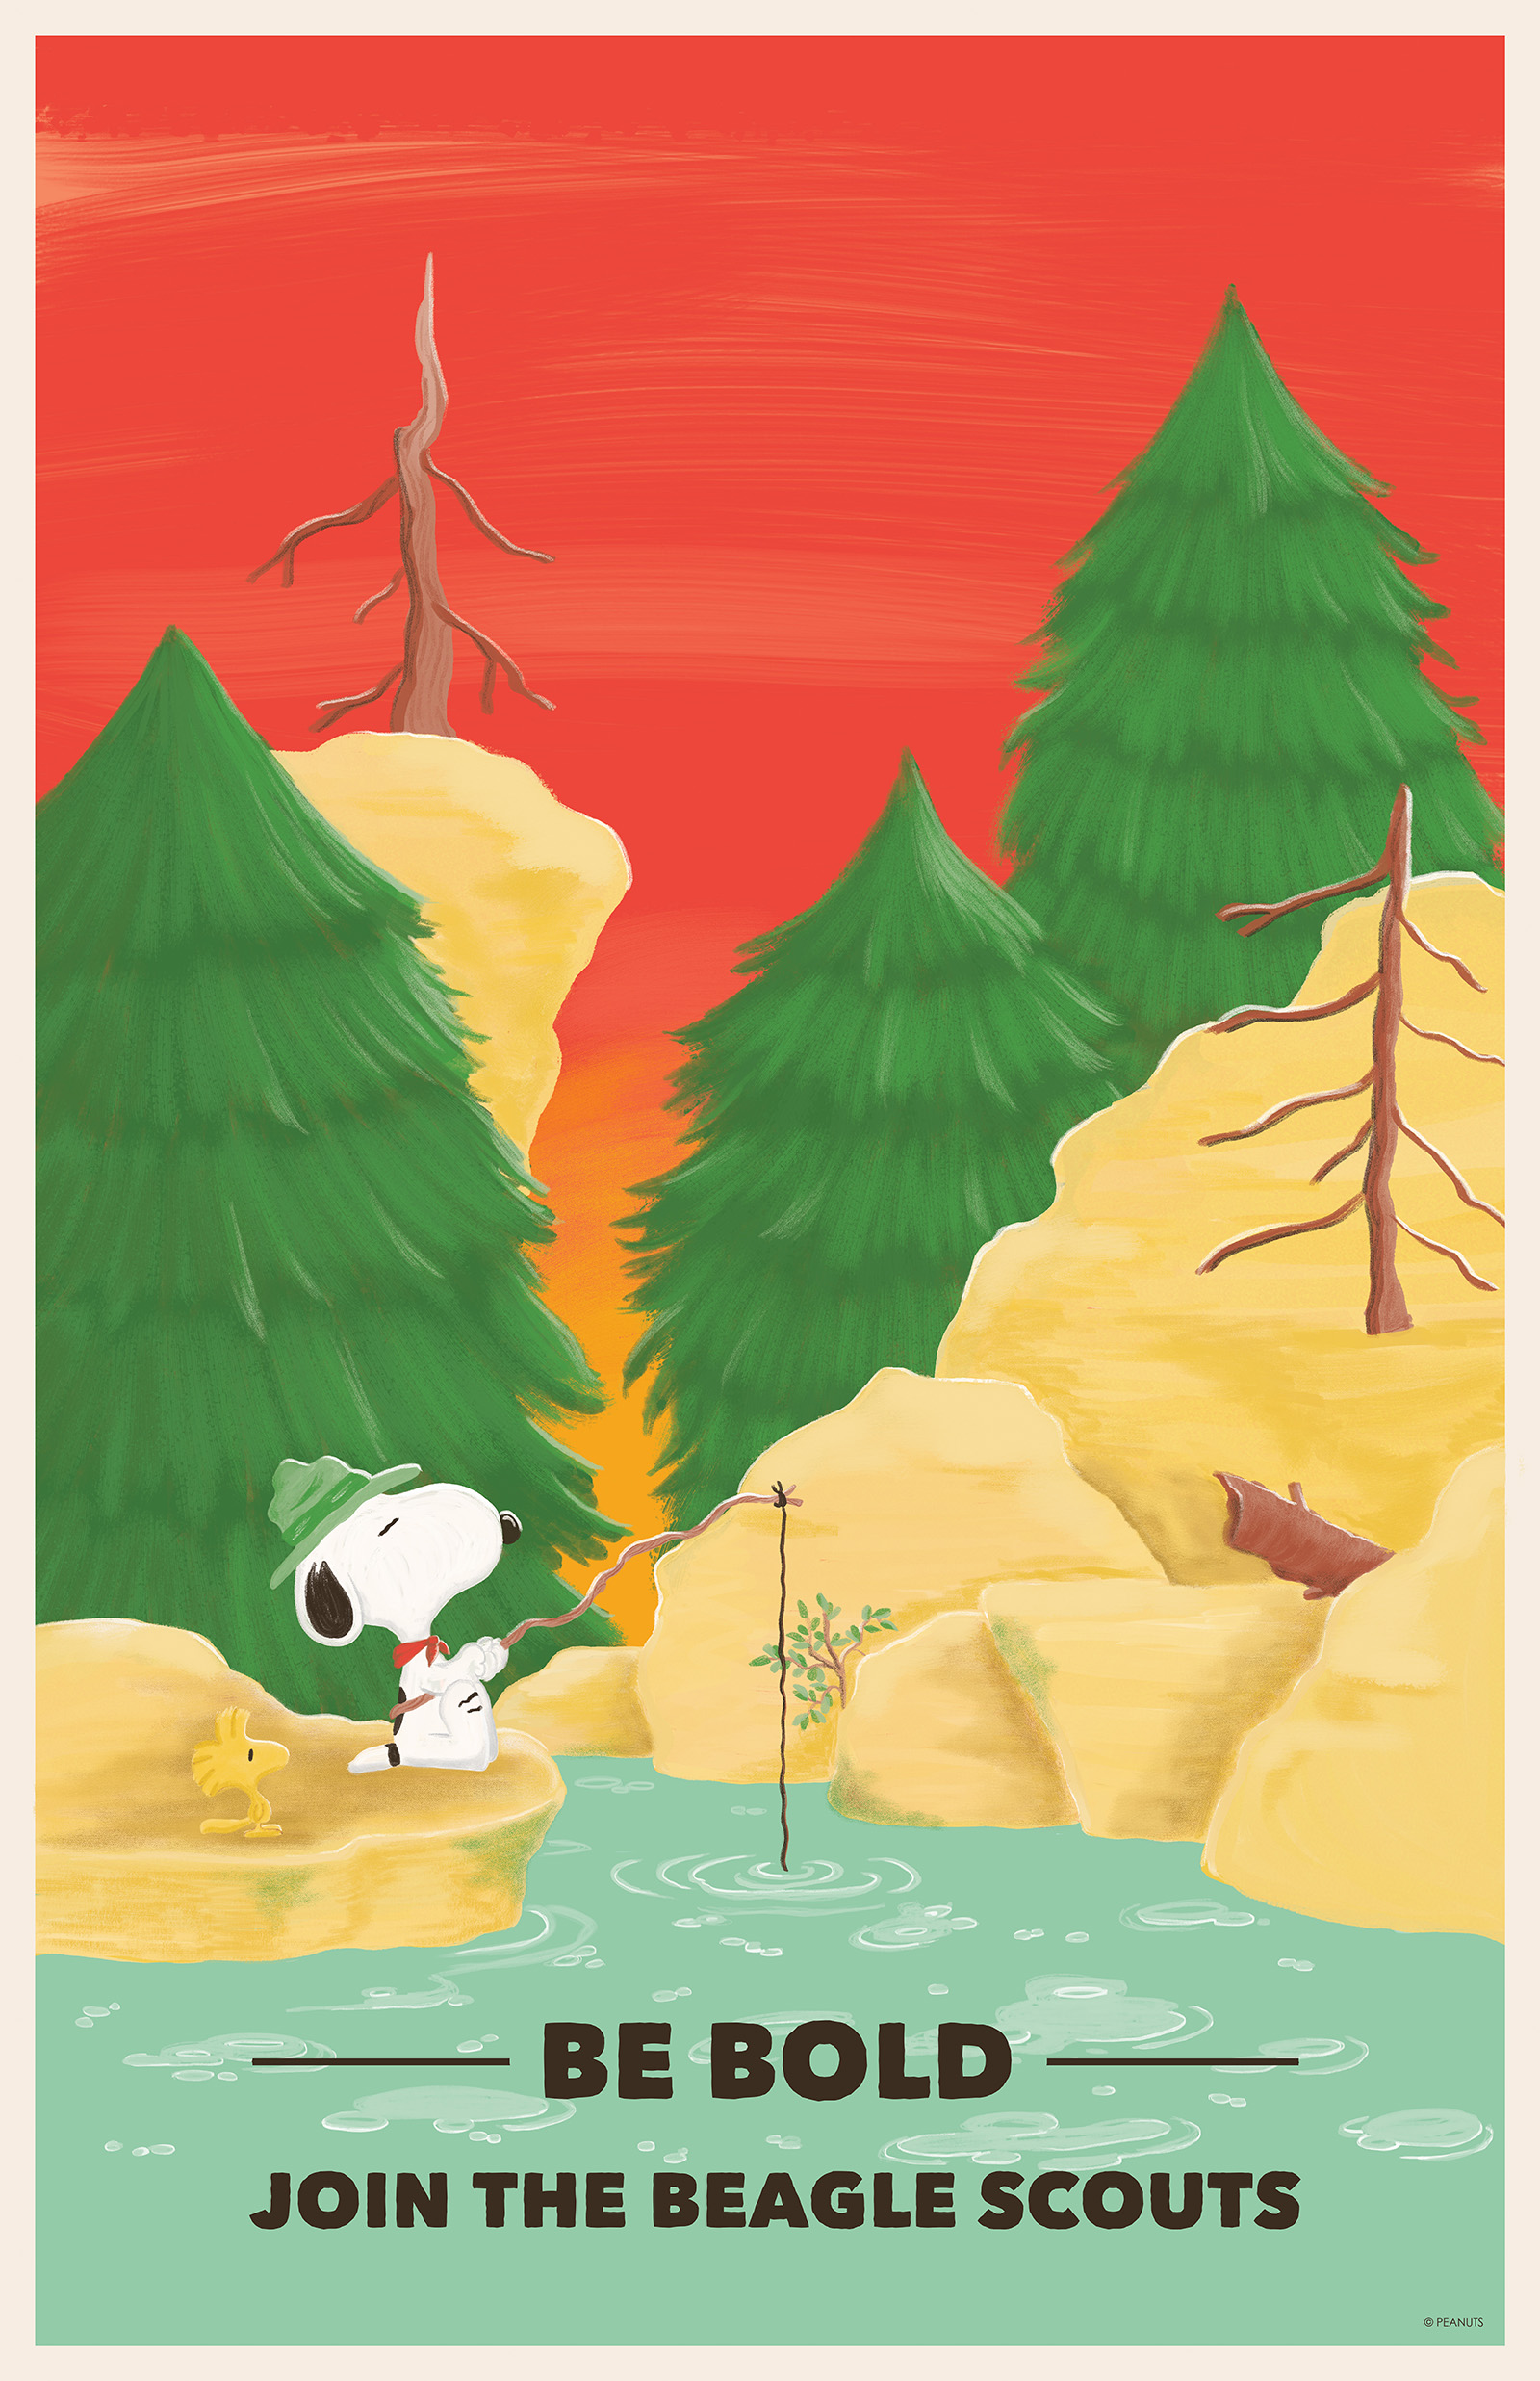 *Character intellectual property of Charles M. Schulz. © Peanuts Worldwide LLC. Artwork by Nomi Kane